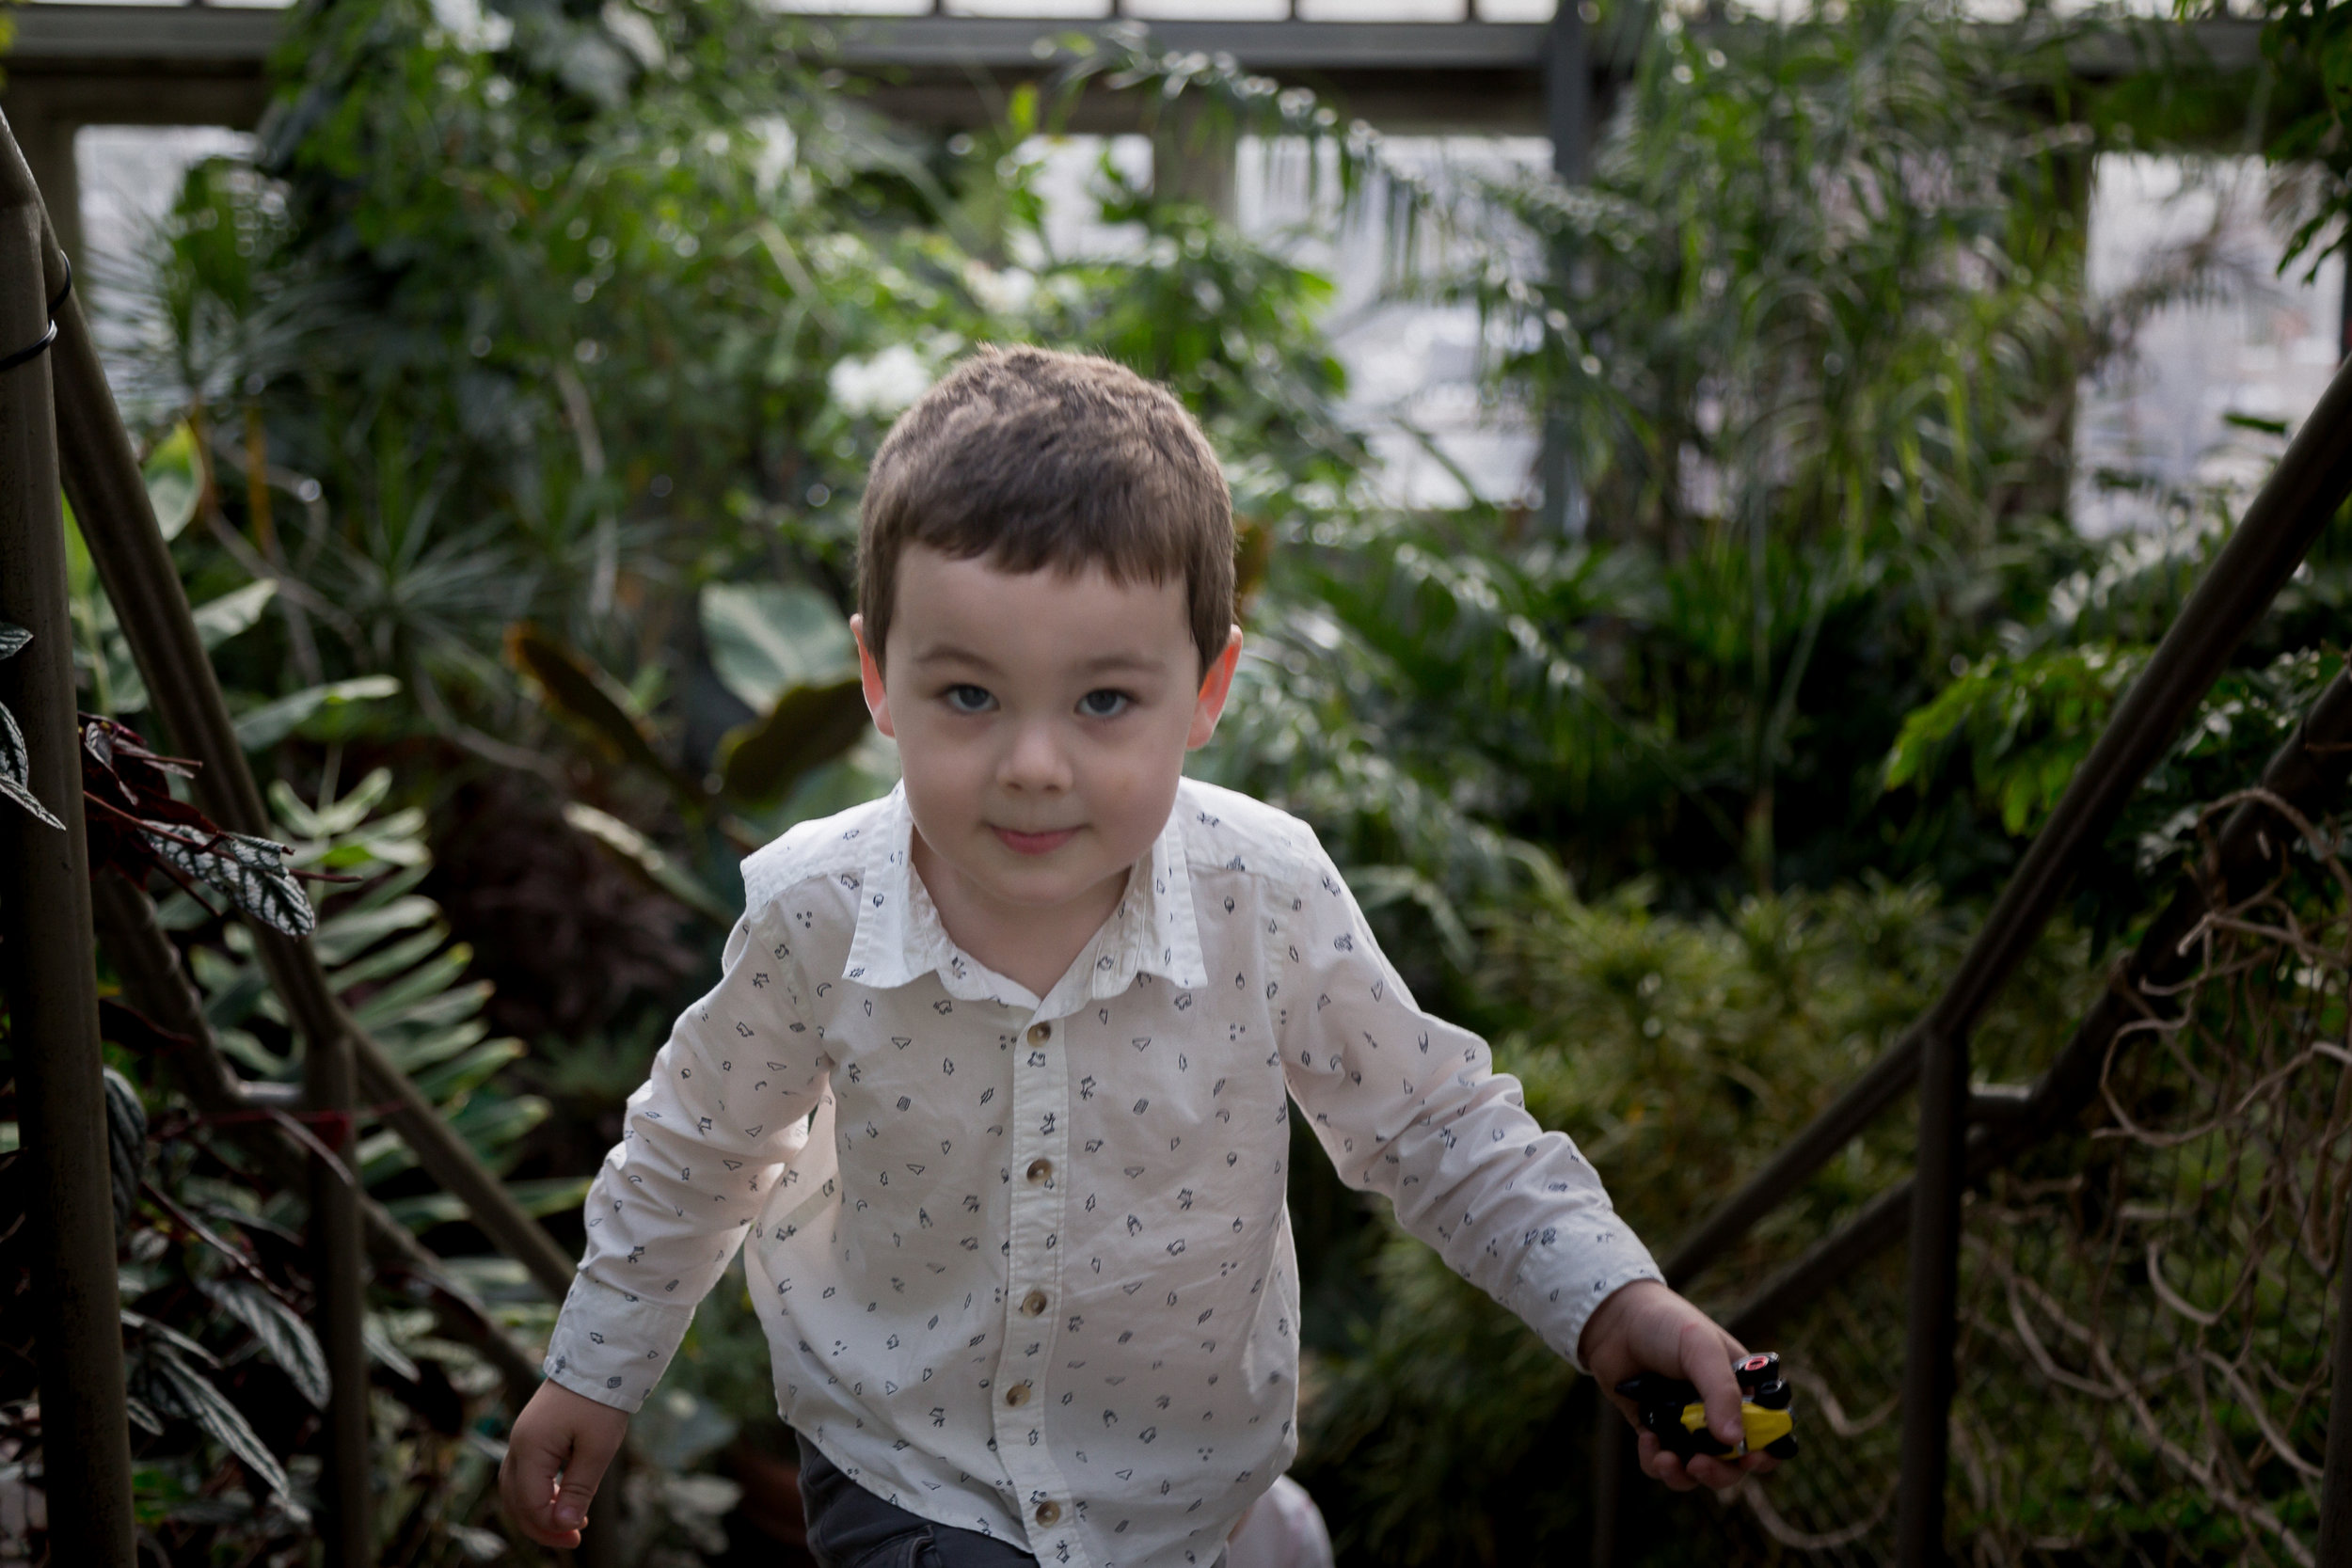 Chicago_Photographer_Garfield_Park_Conservatory_Family_Holiday-11.jpg